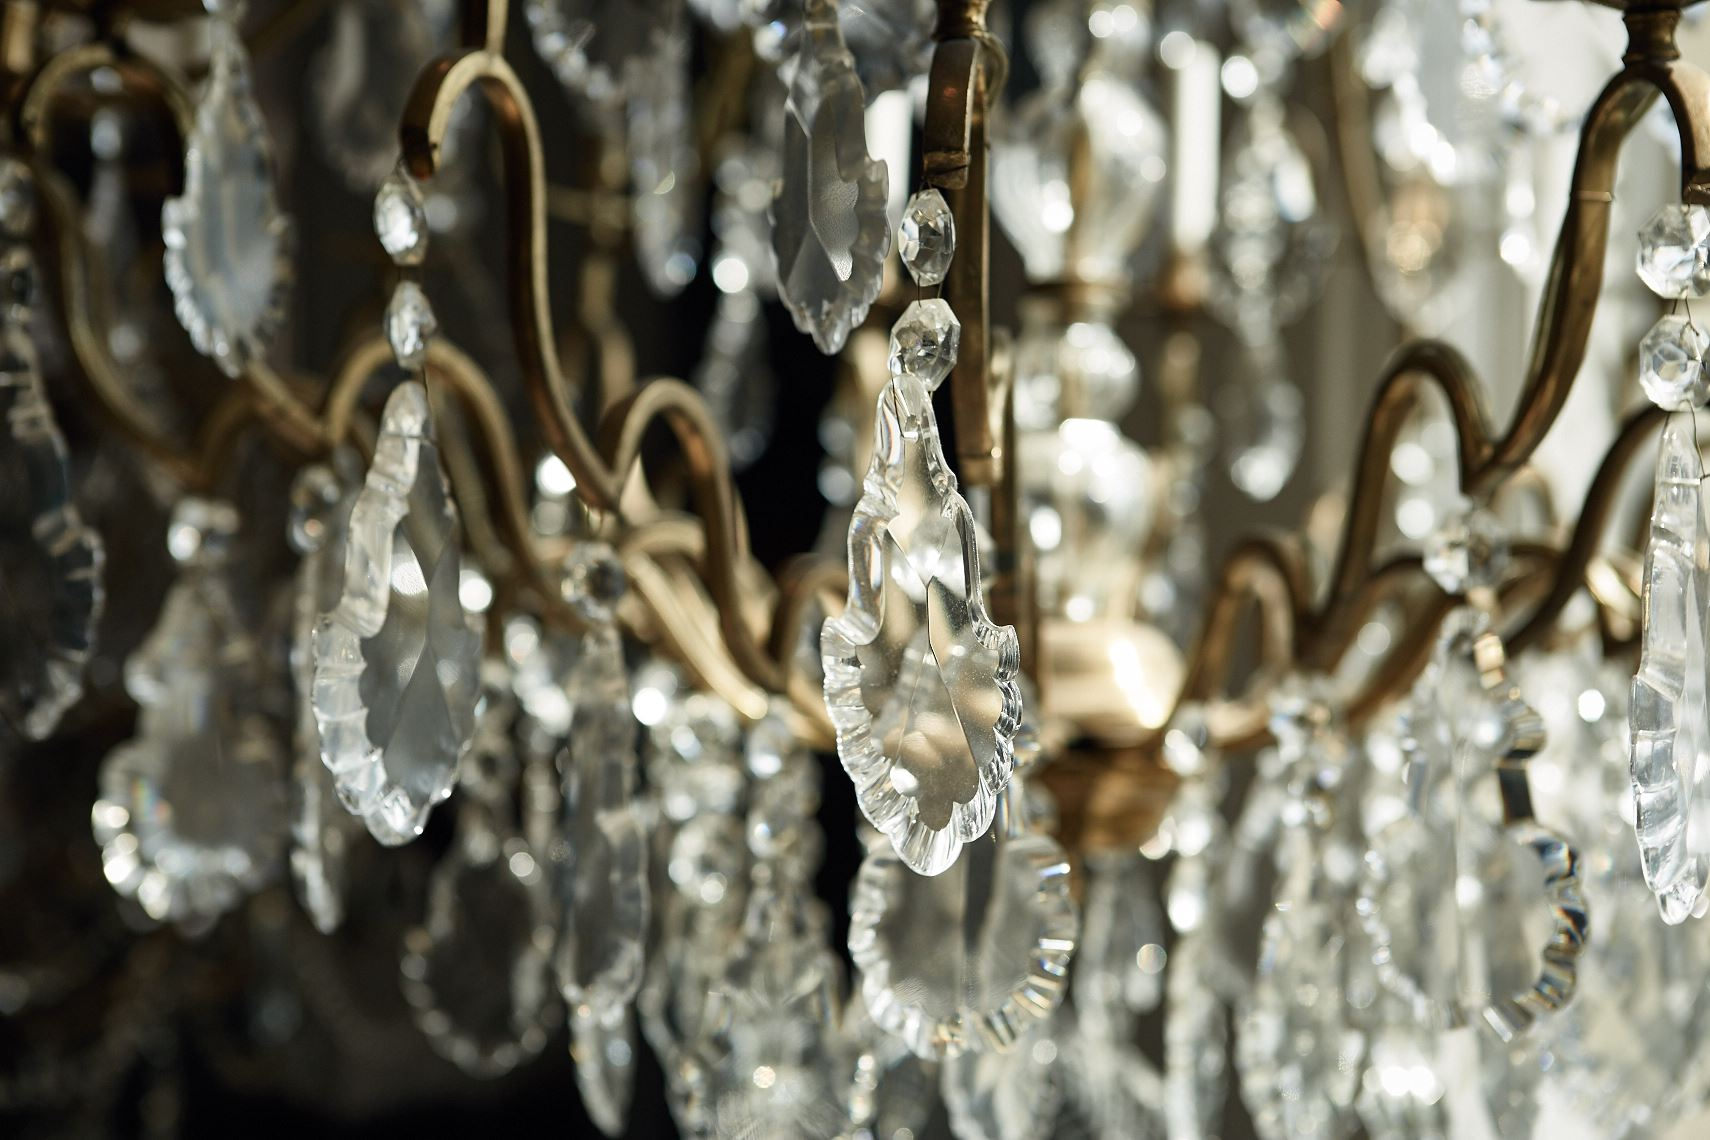 Cut glass antique chandelier by Atlanta photographer Nick Burchell